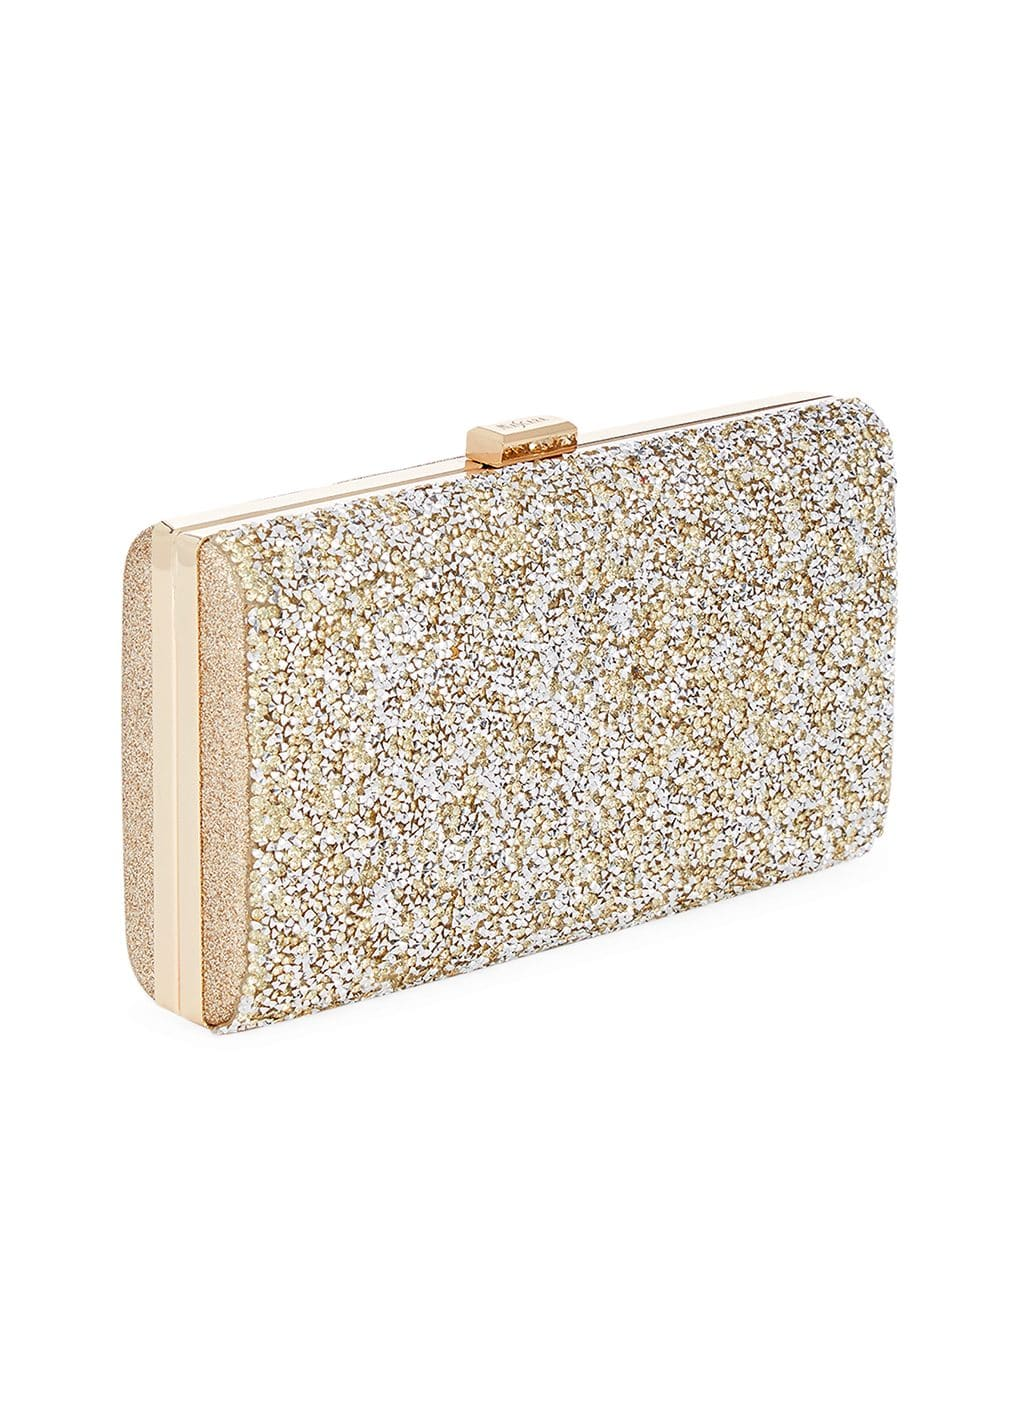 Alila-Gold-Clutch-Mascara